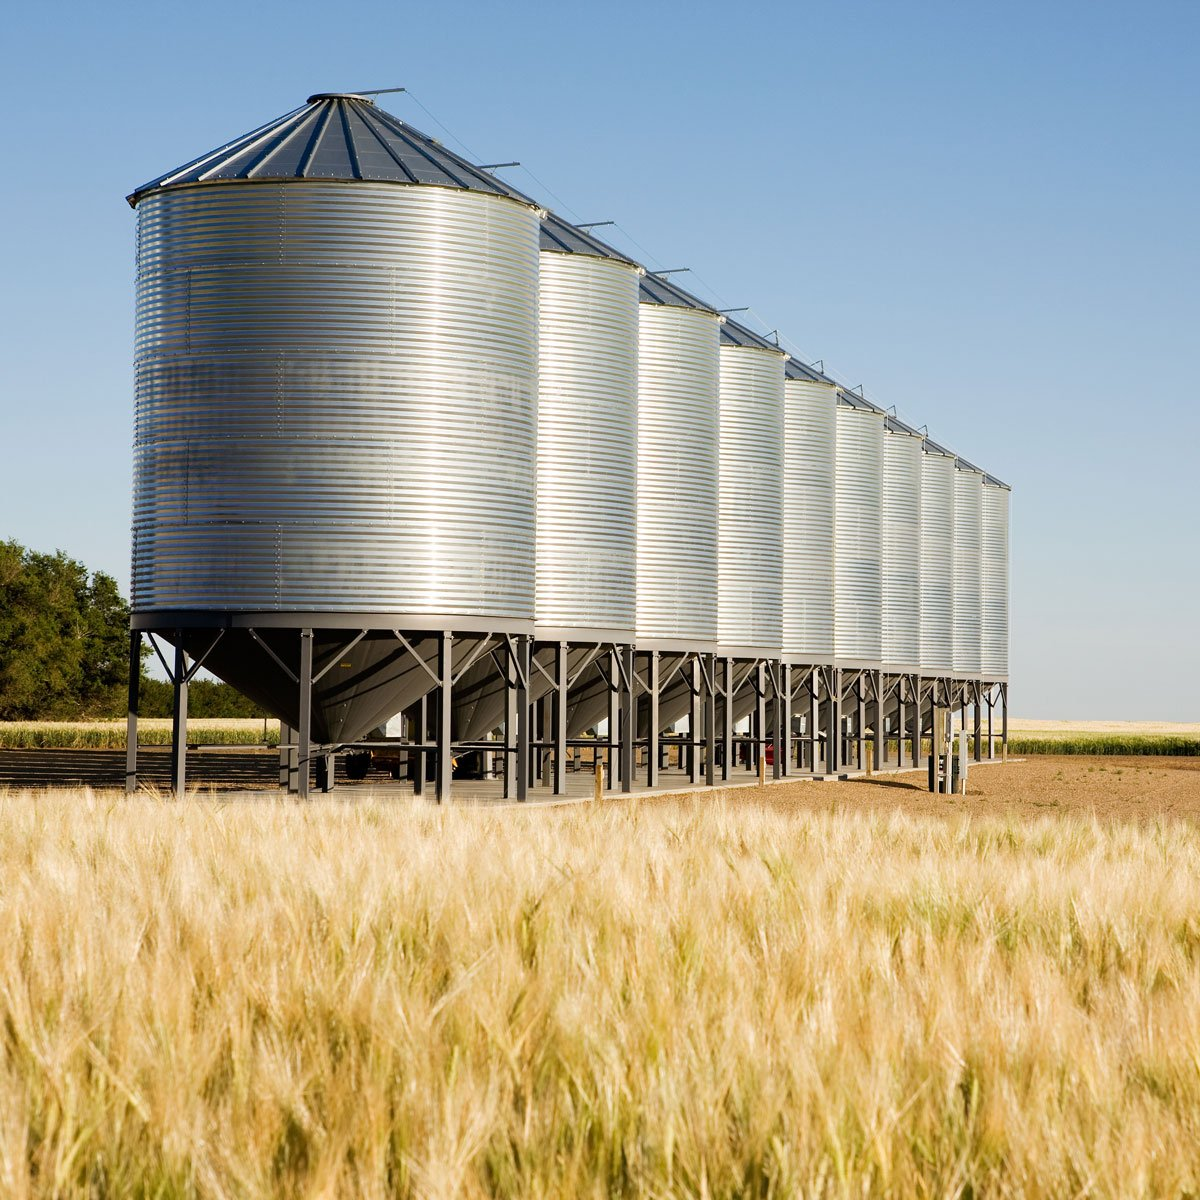 Bulk storage bins in field